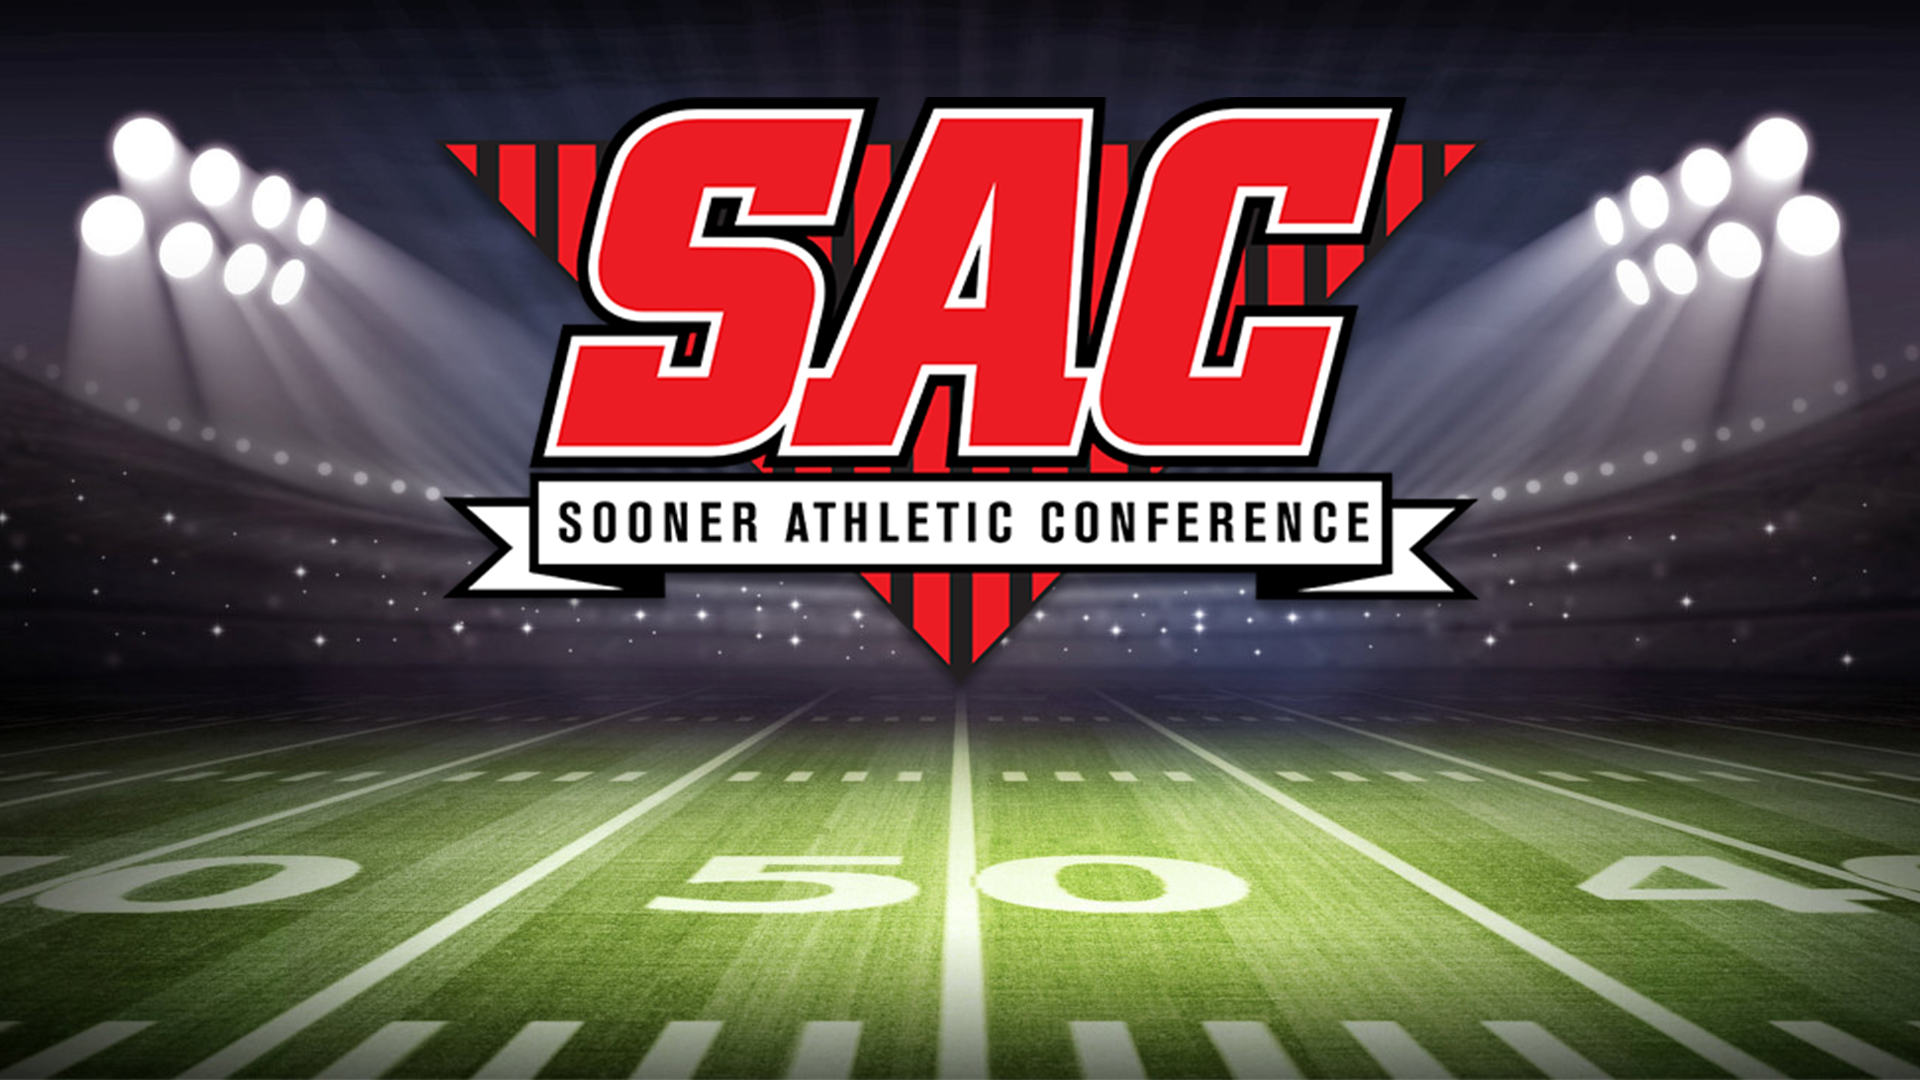 Sac Approves 8 Person Officiating Crews For Inaugural Football